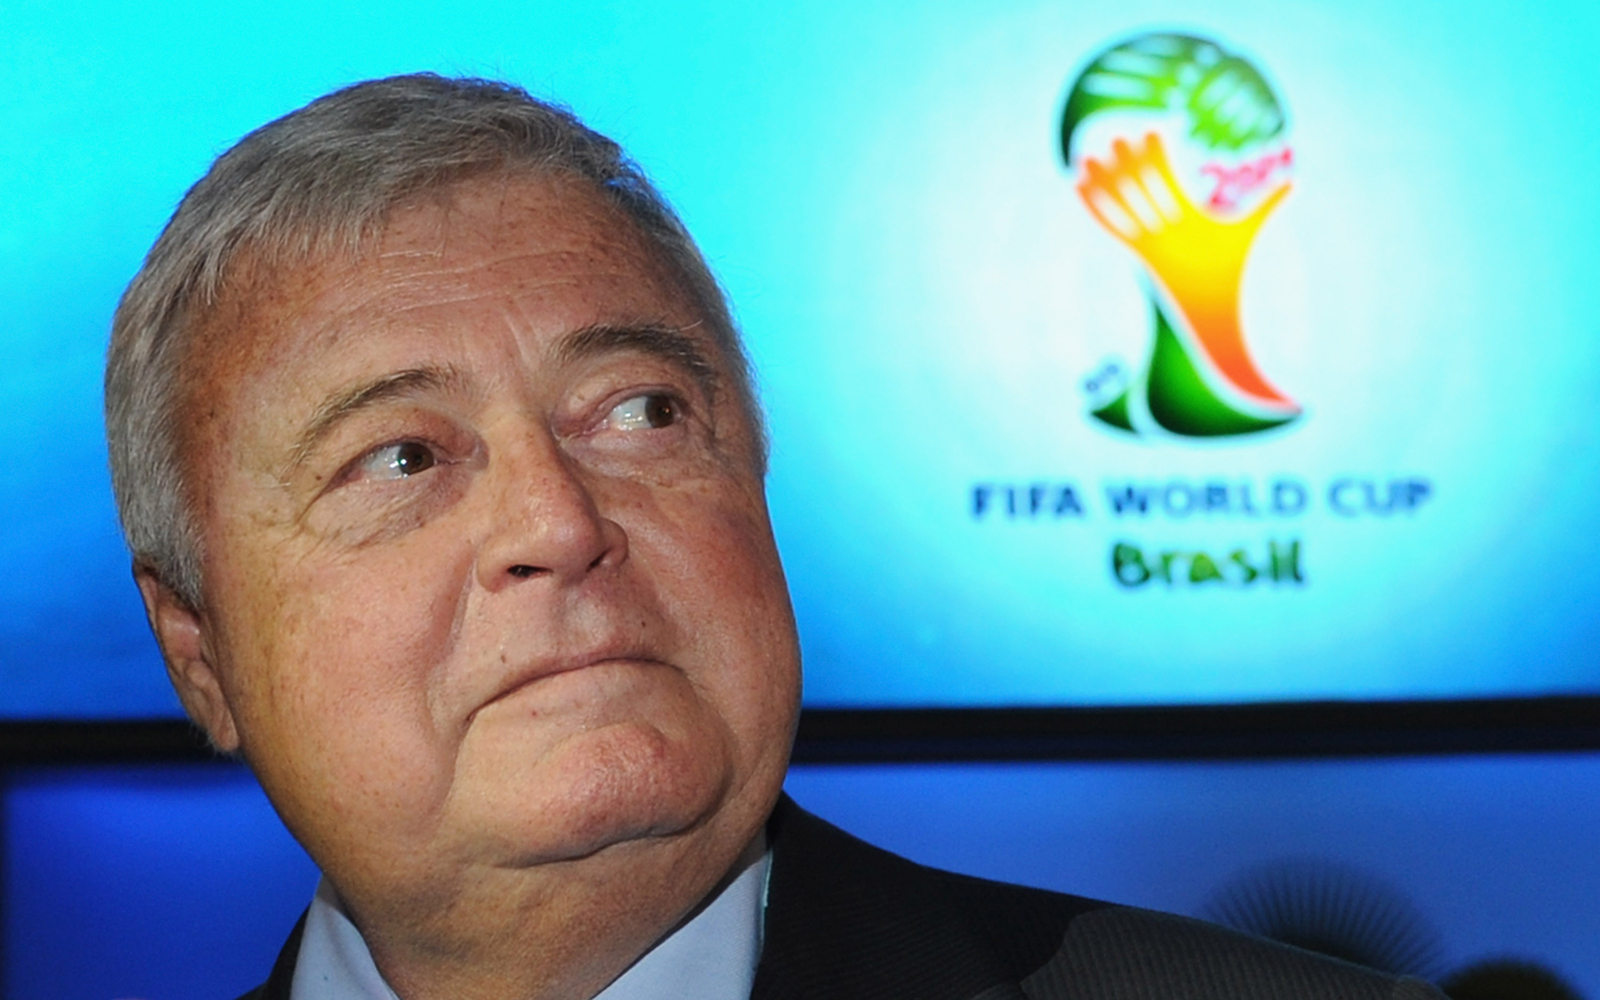 Former FIFA executive committee; Former president, Brazil football federation